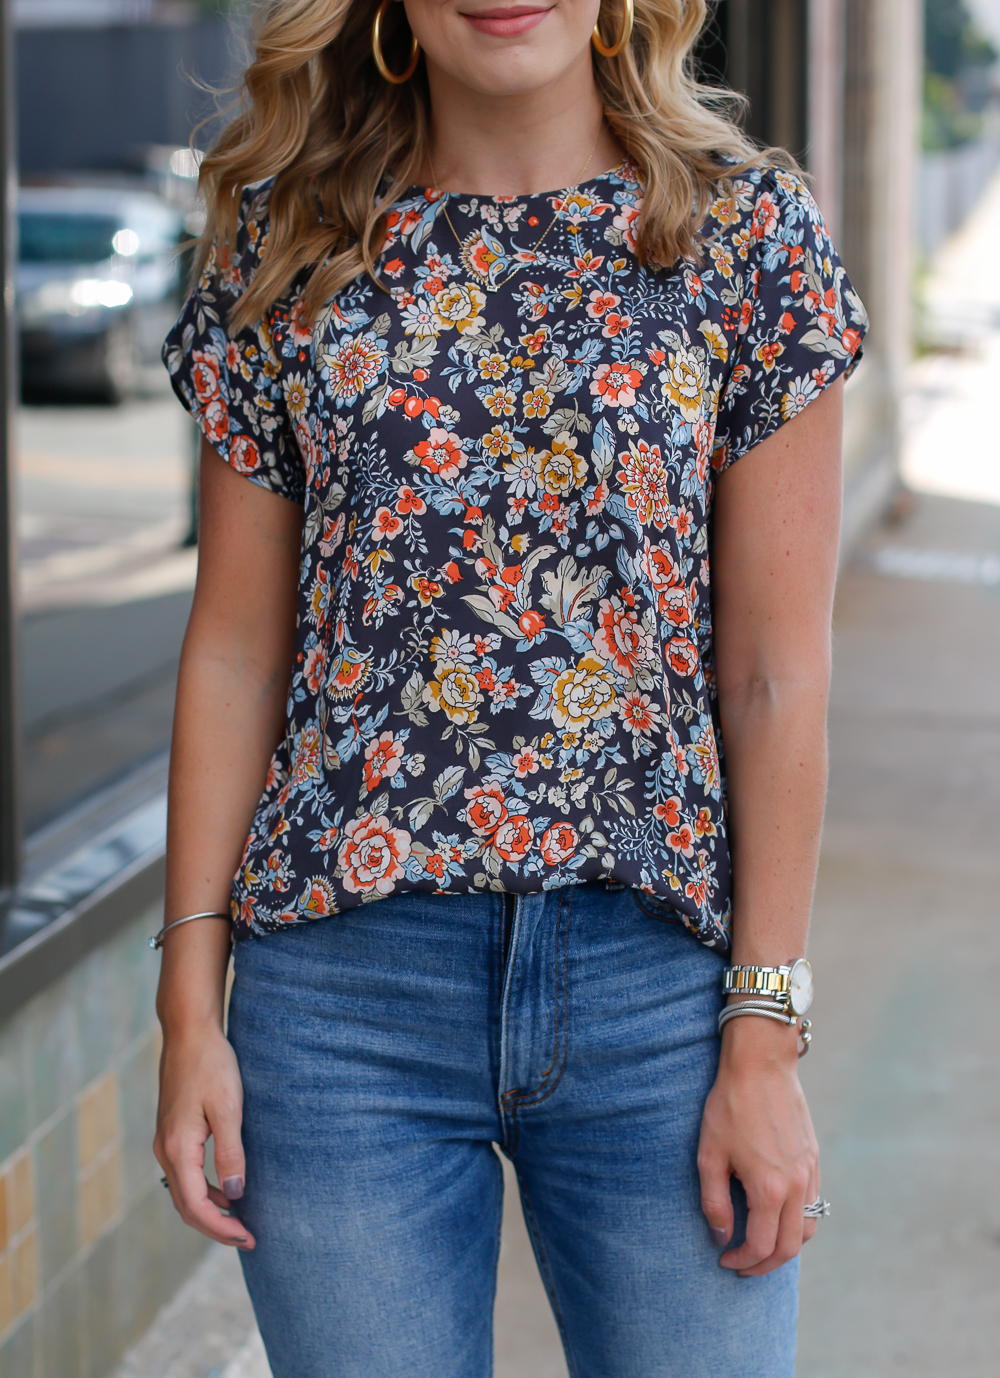 HOW TO STYLE FLORALS FOR FALL